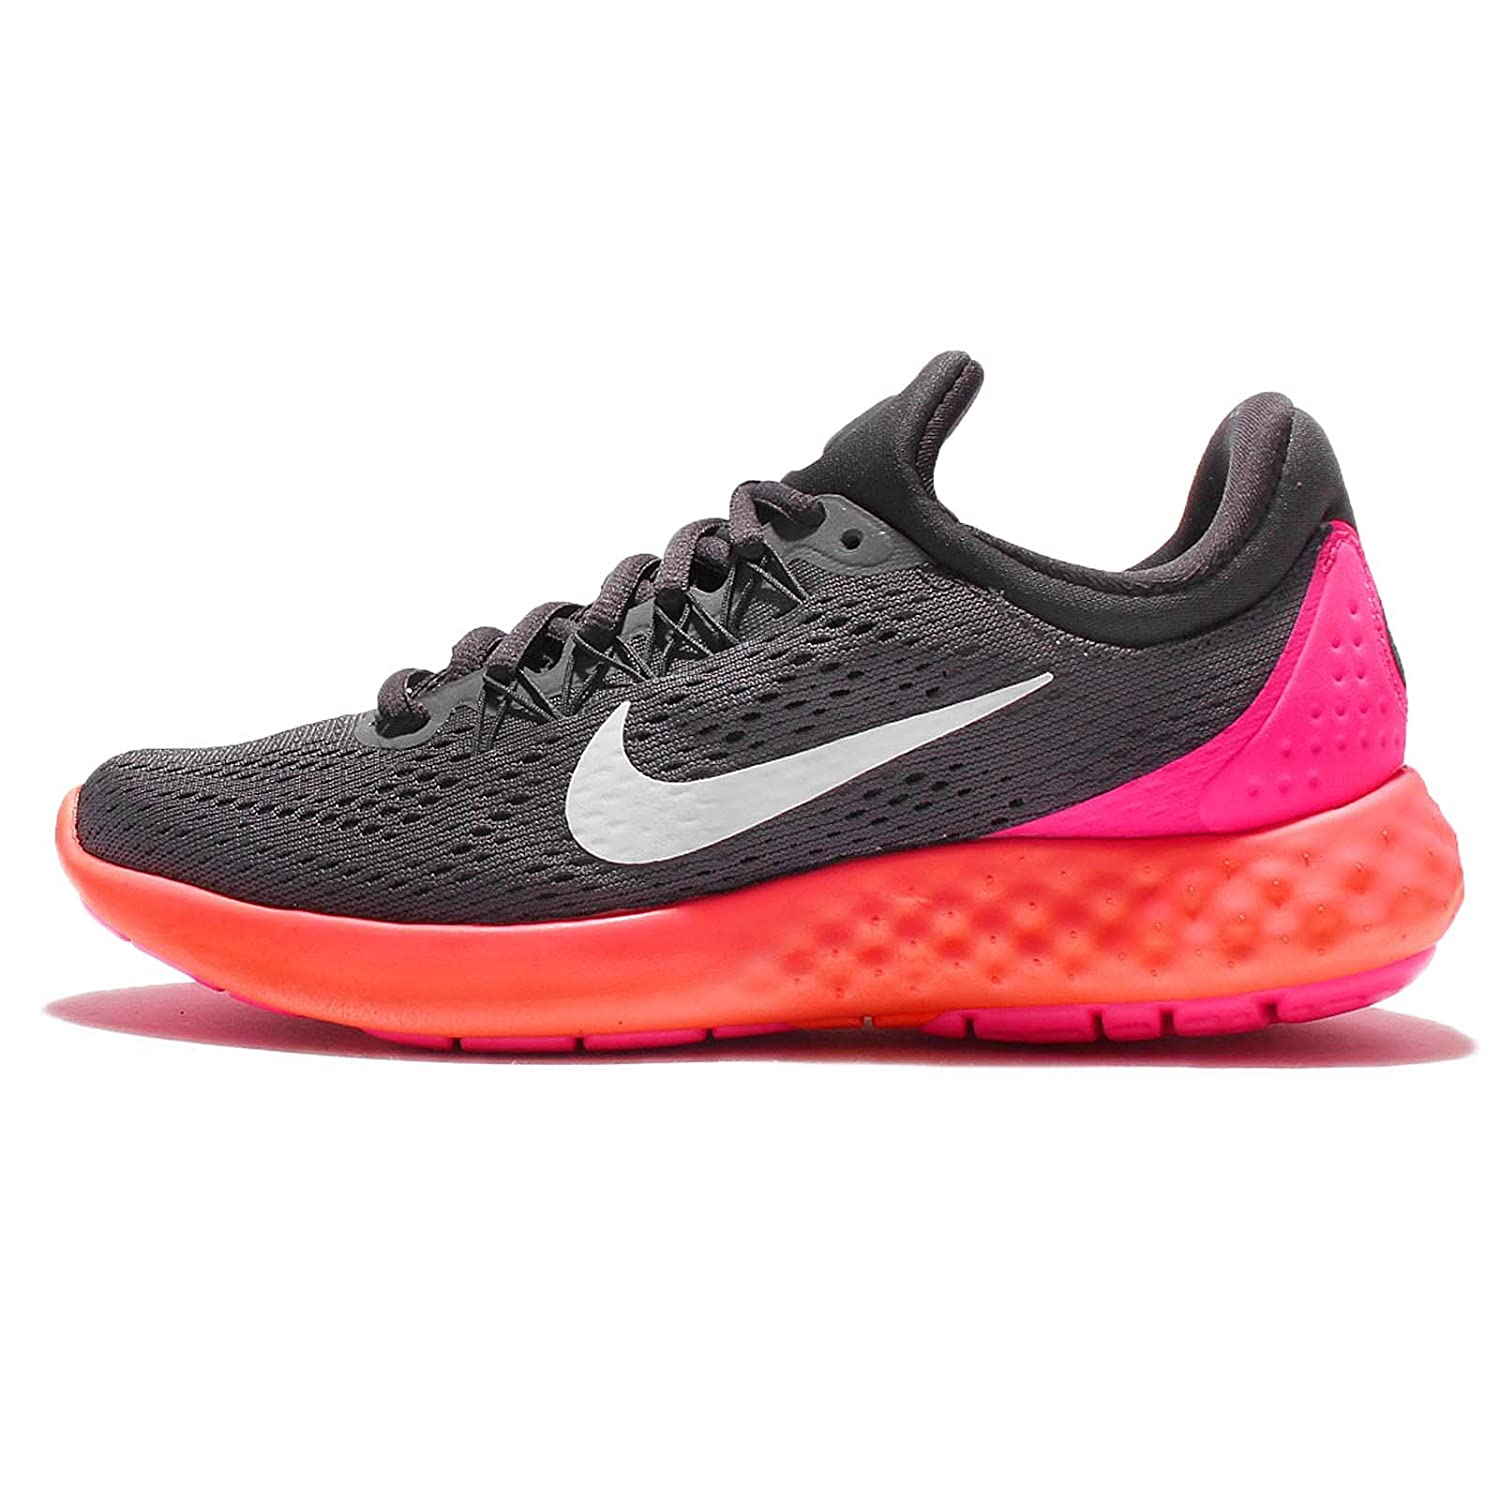 NIKE Womens Lunar Skyelux Round Toe Lace-up Running Shoes B01CJ3NQG0 5.5 B(M) US|Dark Grey/White Anthracite